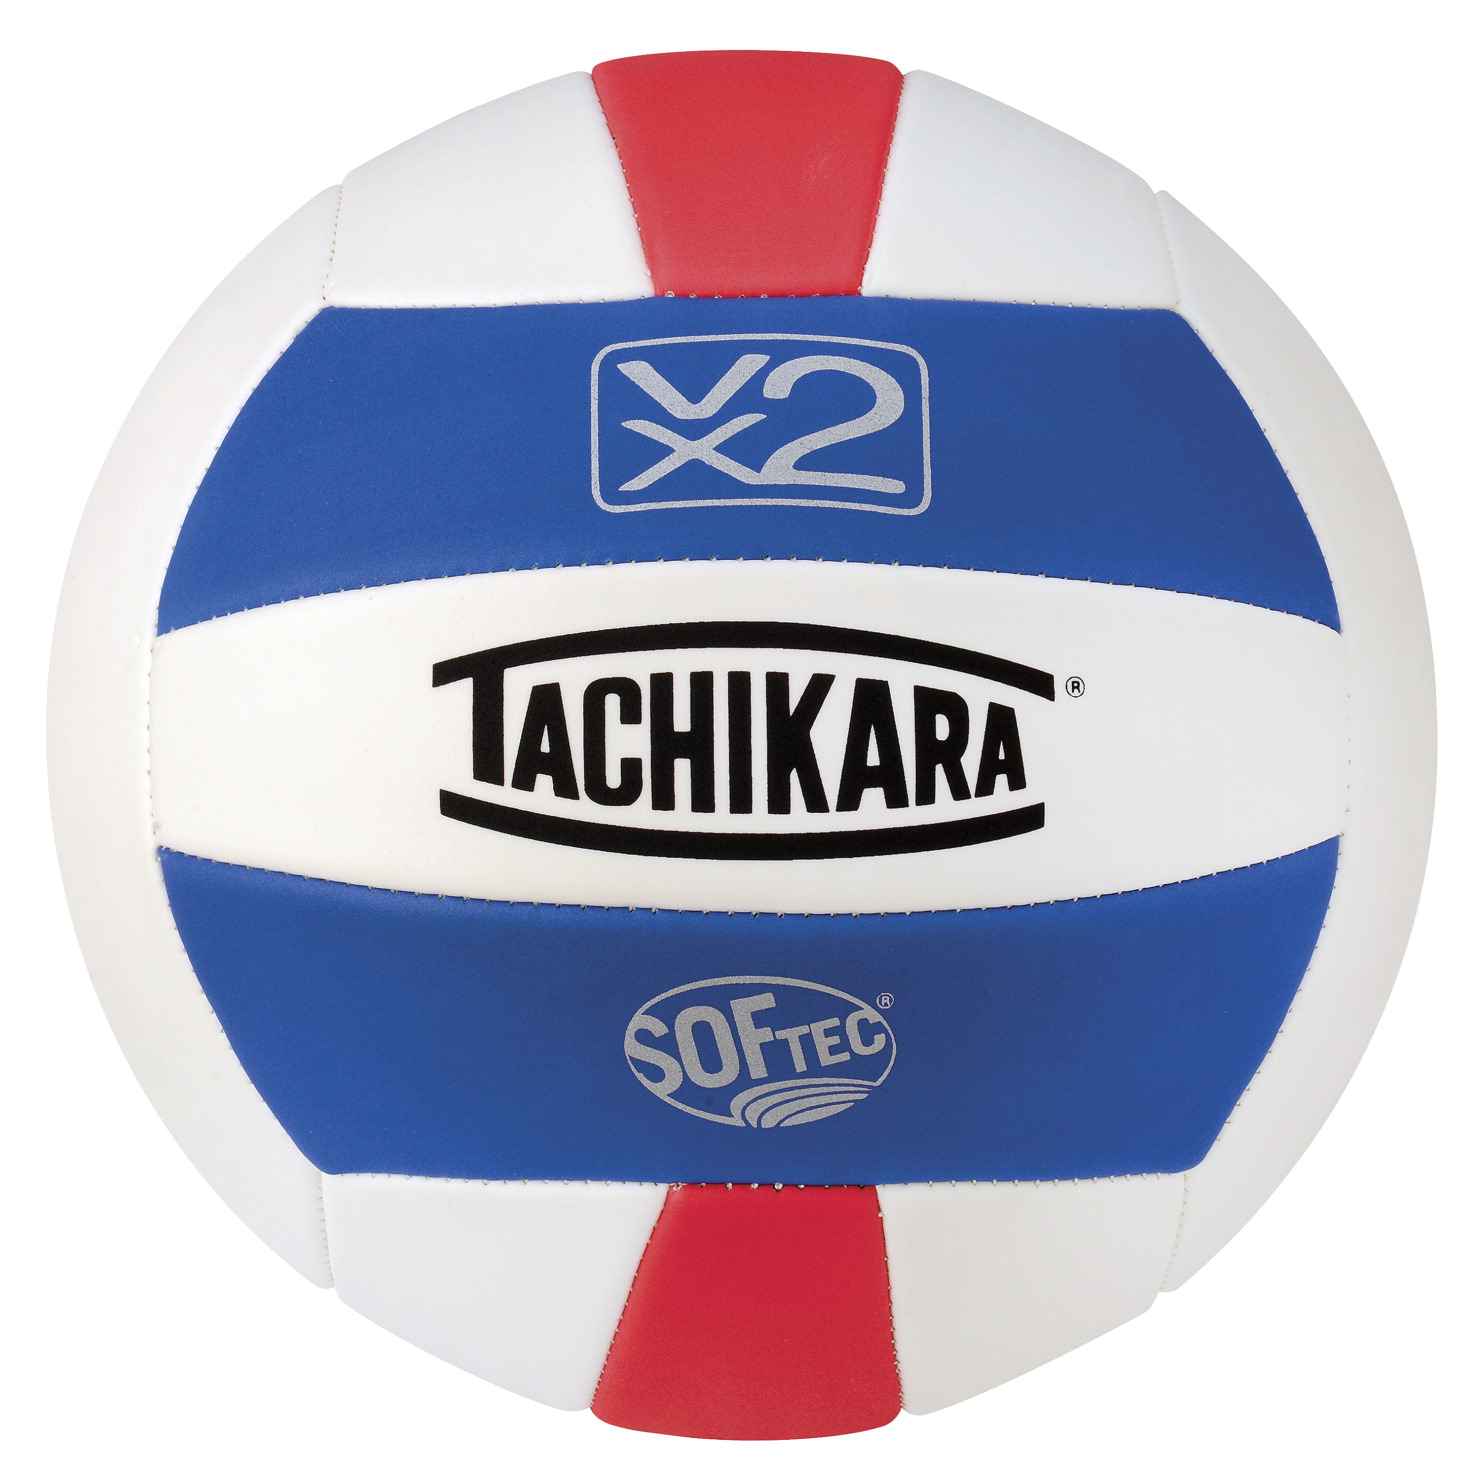 Tachikara Softec Foam-Backed Panel Volleyball - Royal/White/Scarlet THUMBNAIL